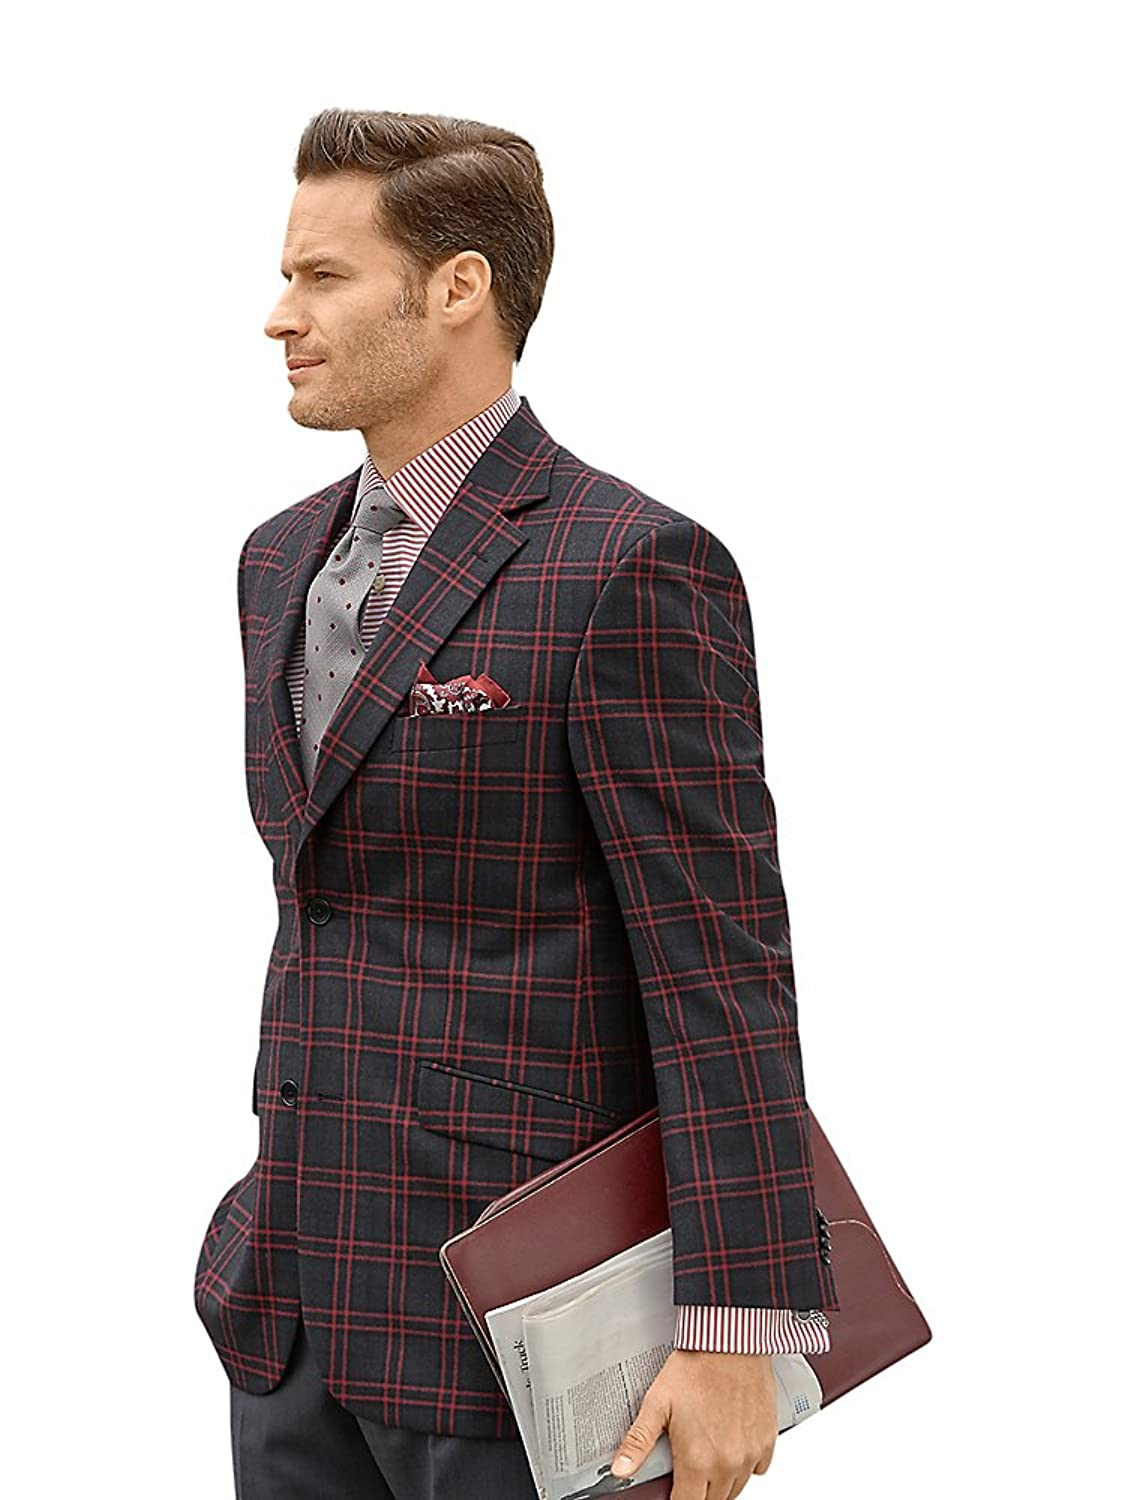 1920s Mens Coats & Jackets History Paul Fredrick Mens Wool Plaid Sport Coat $229.98 AT vintagedancer.com